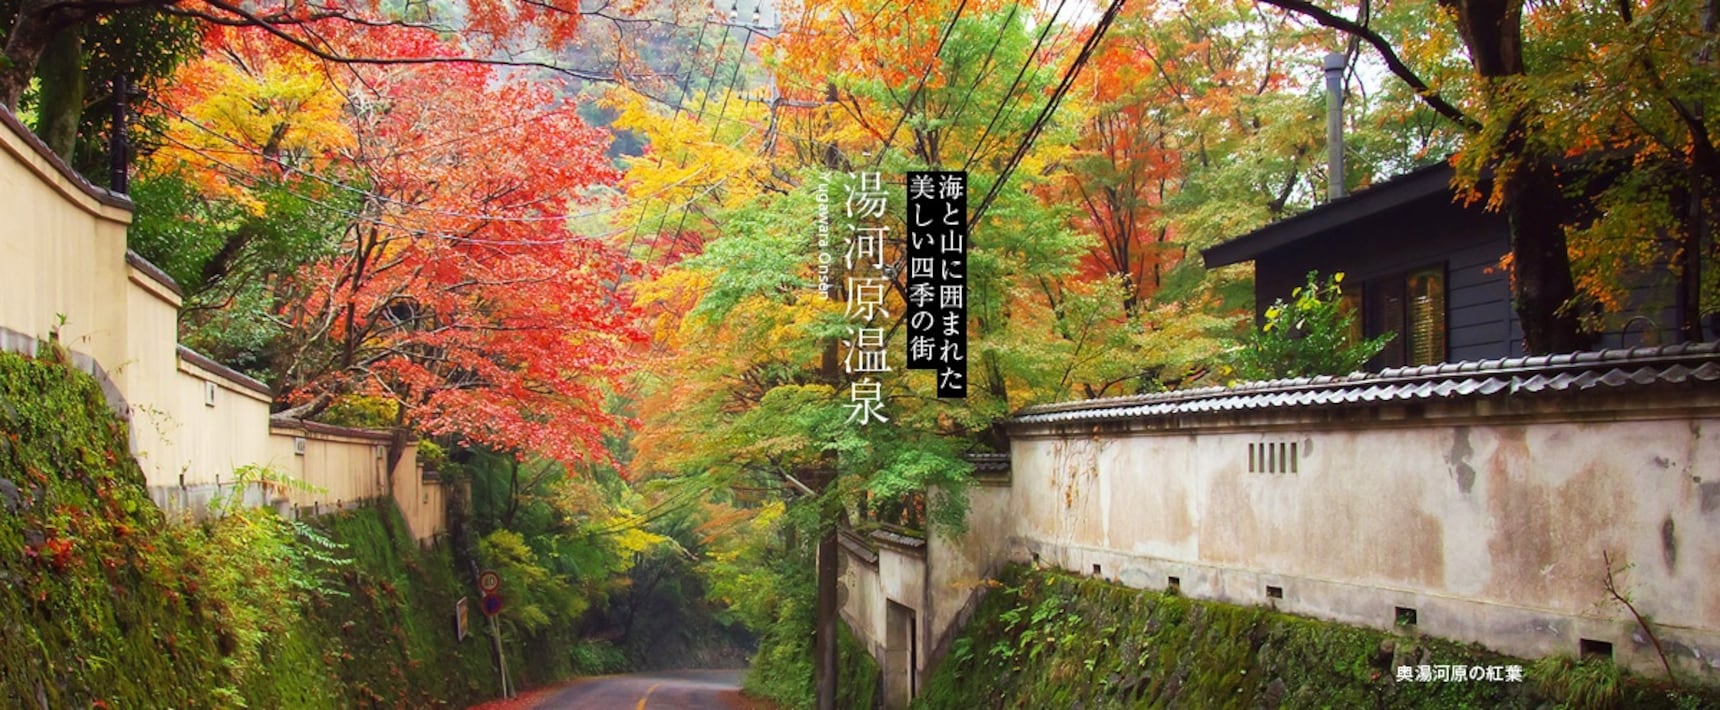 3 Awesome Autumn Events in Yugawara Onsen